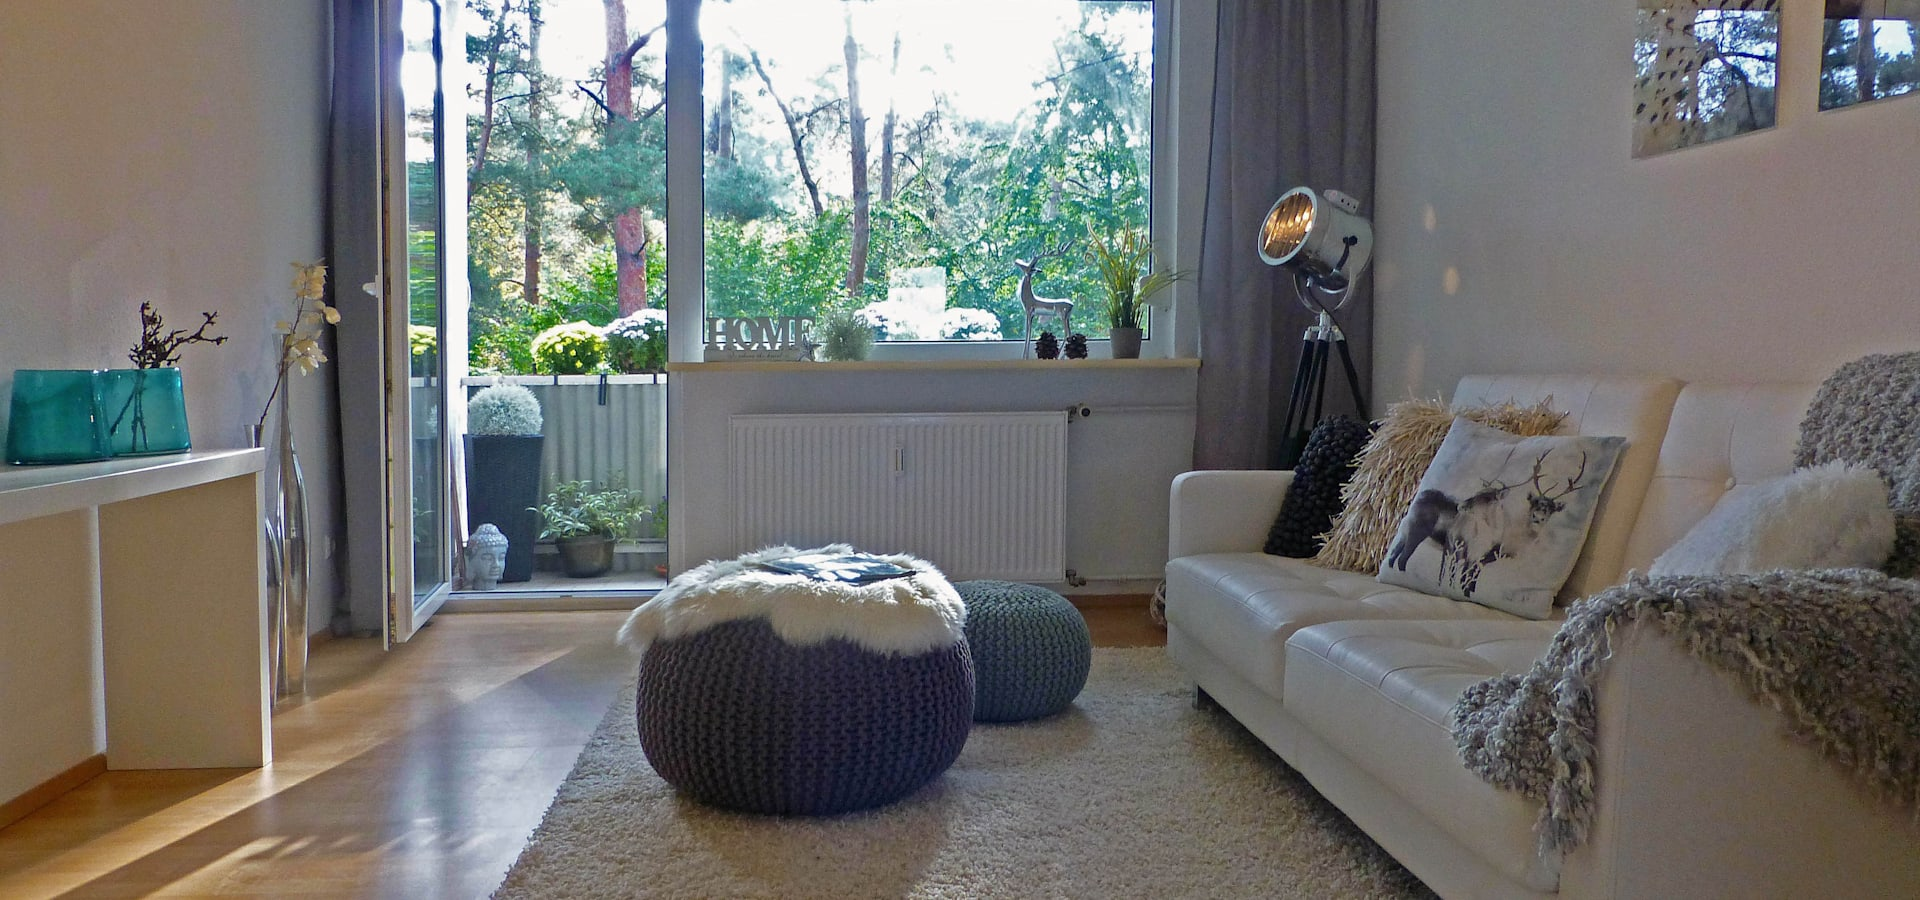 Unikat-home staging